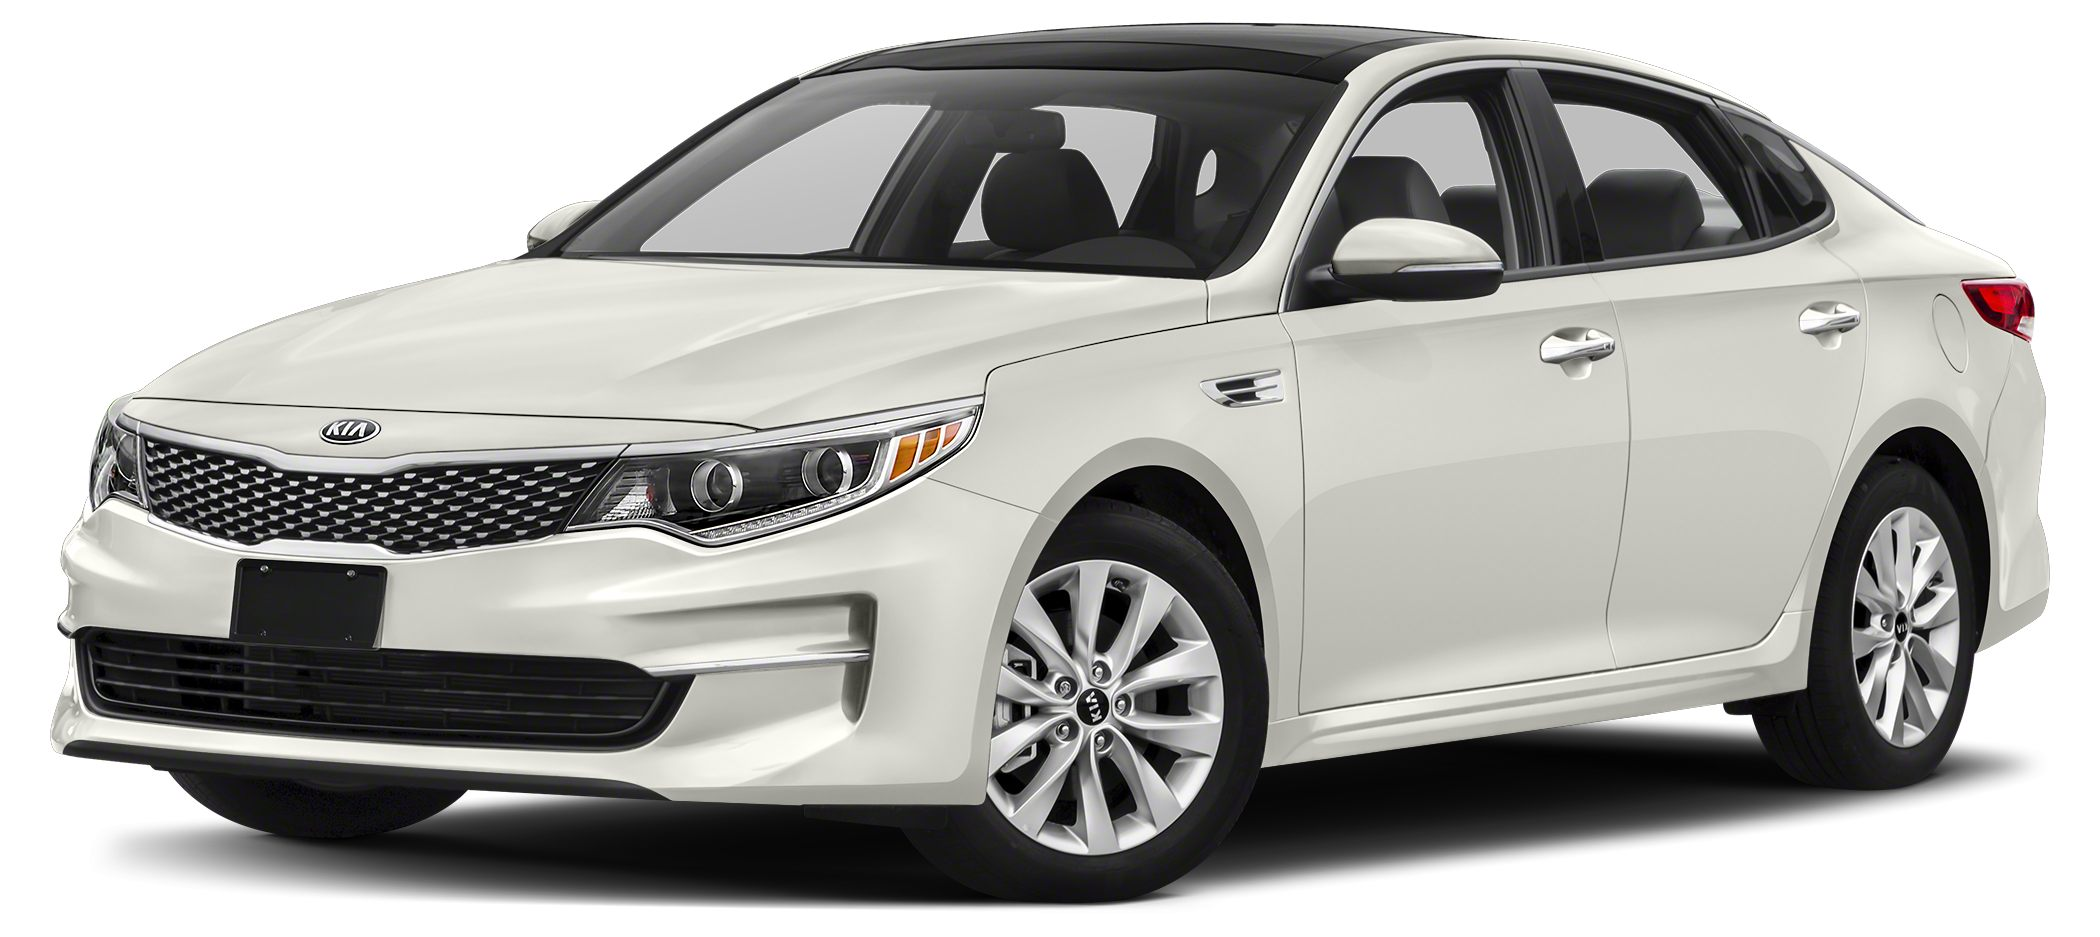 2016 Kia Optima LX Miles 3482Color Snow White Pearl Stock K14731 VIN 5XXGT4L30GG026058